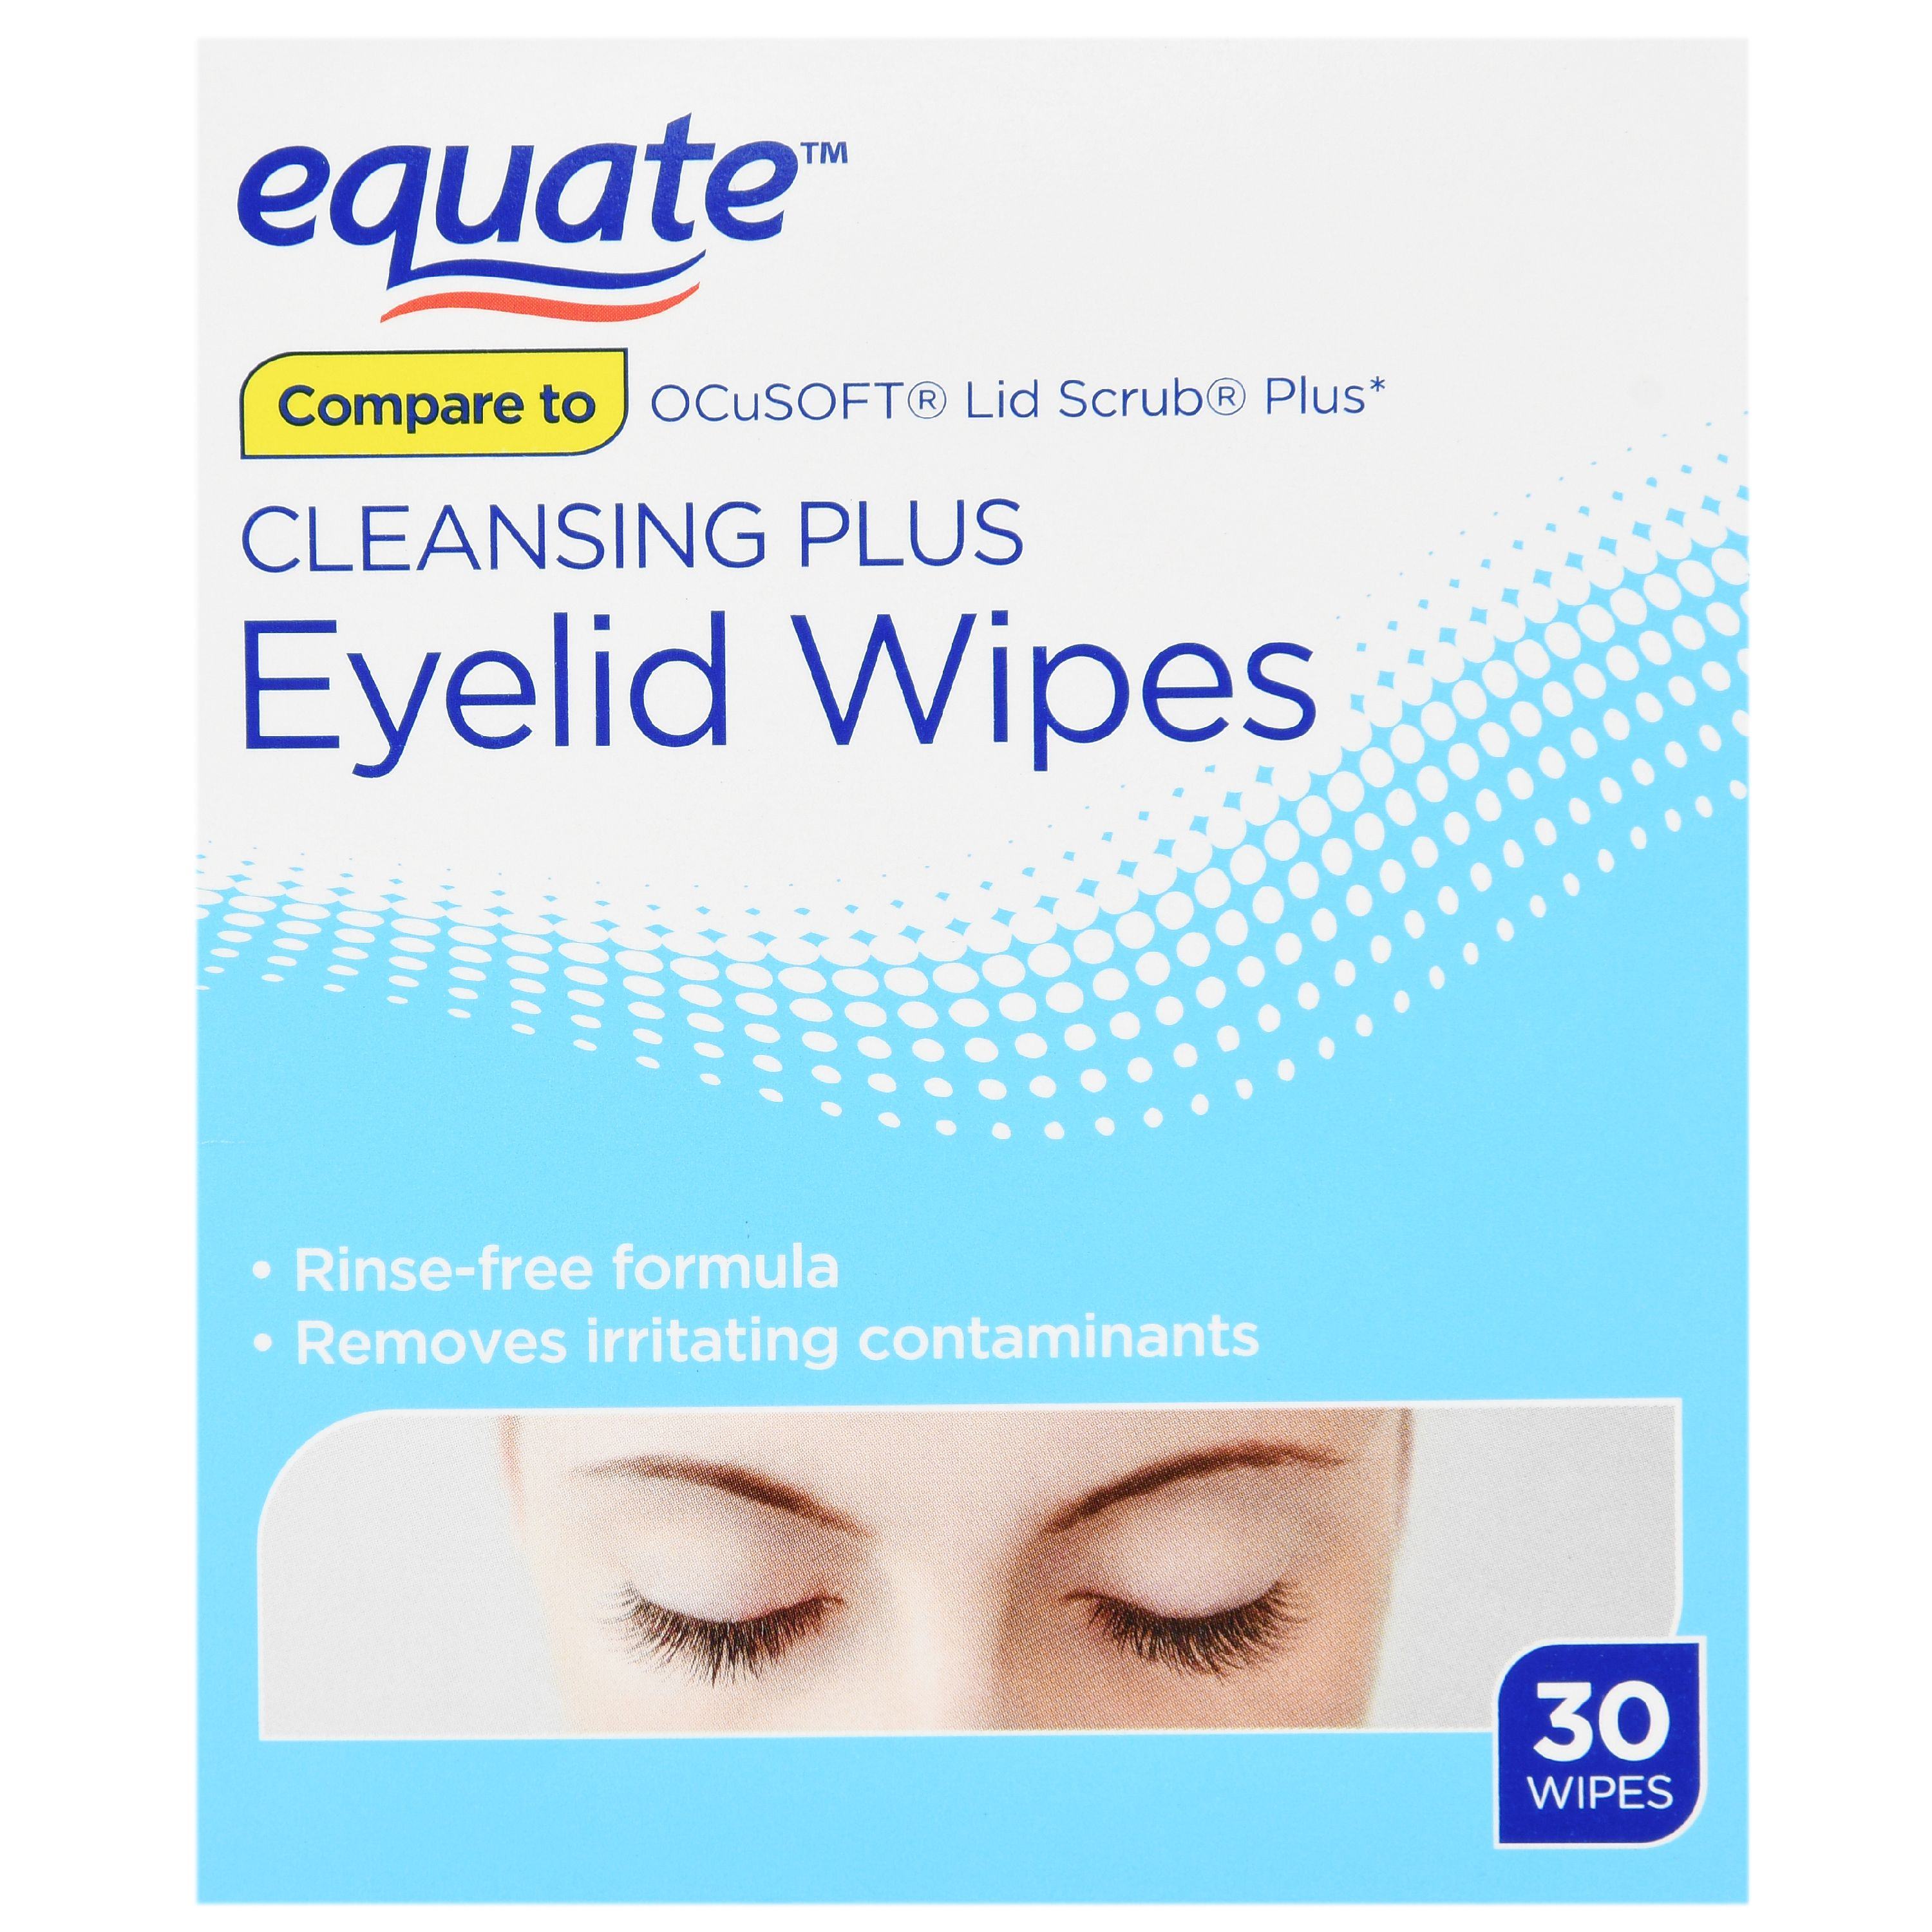 Equate Cleaning Plus Eyelid Wipes, 30 Ct